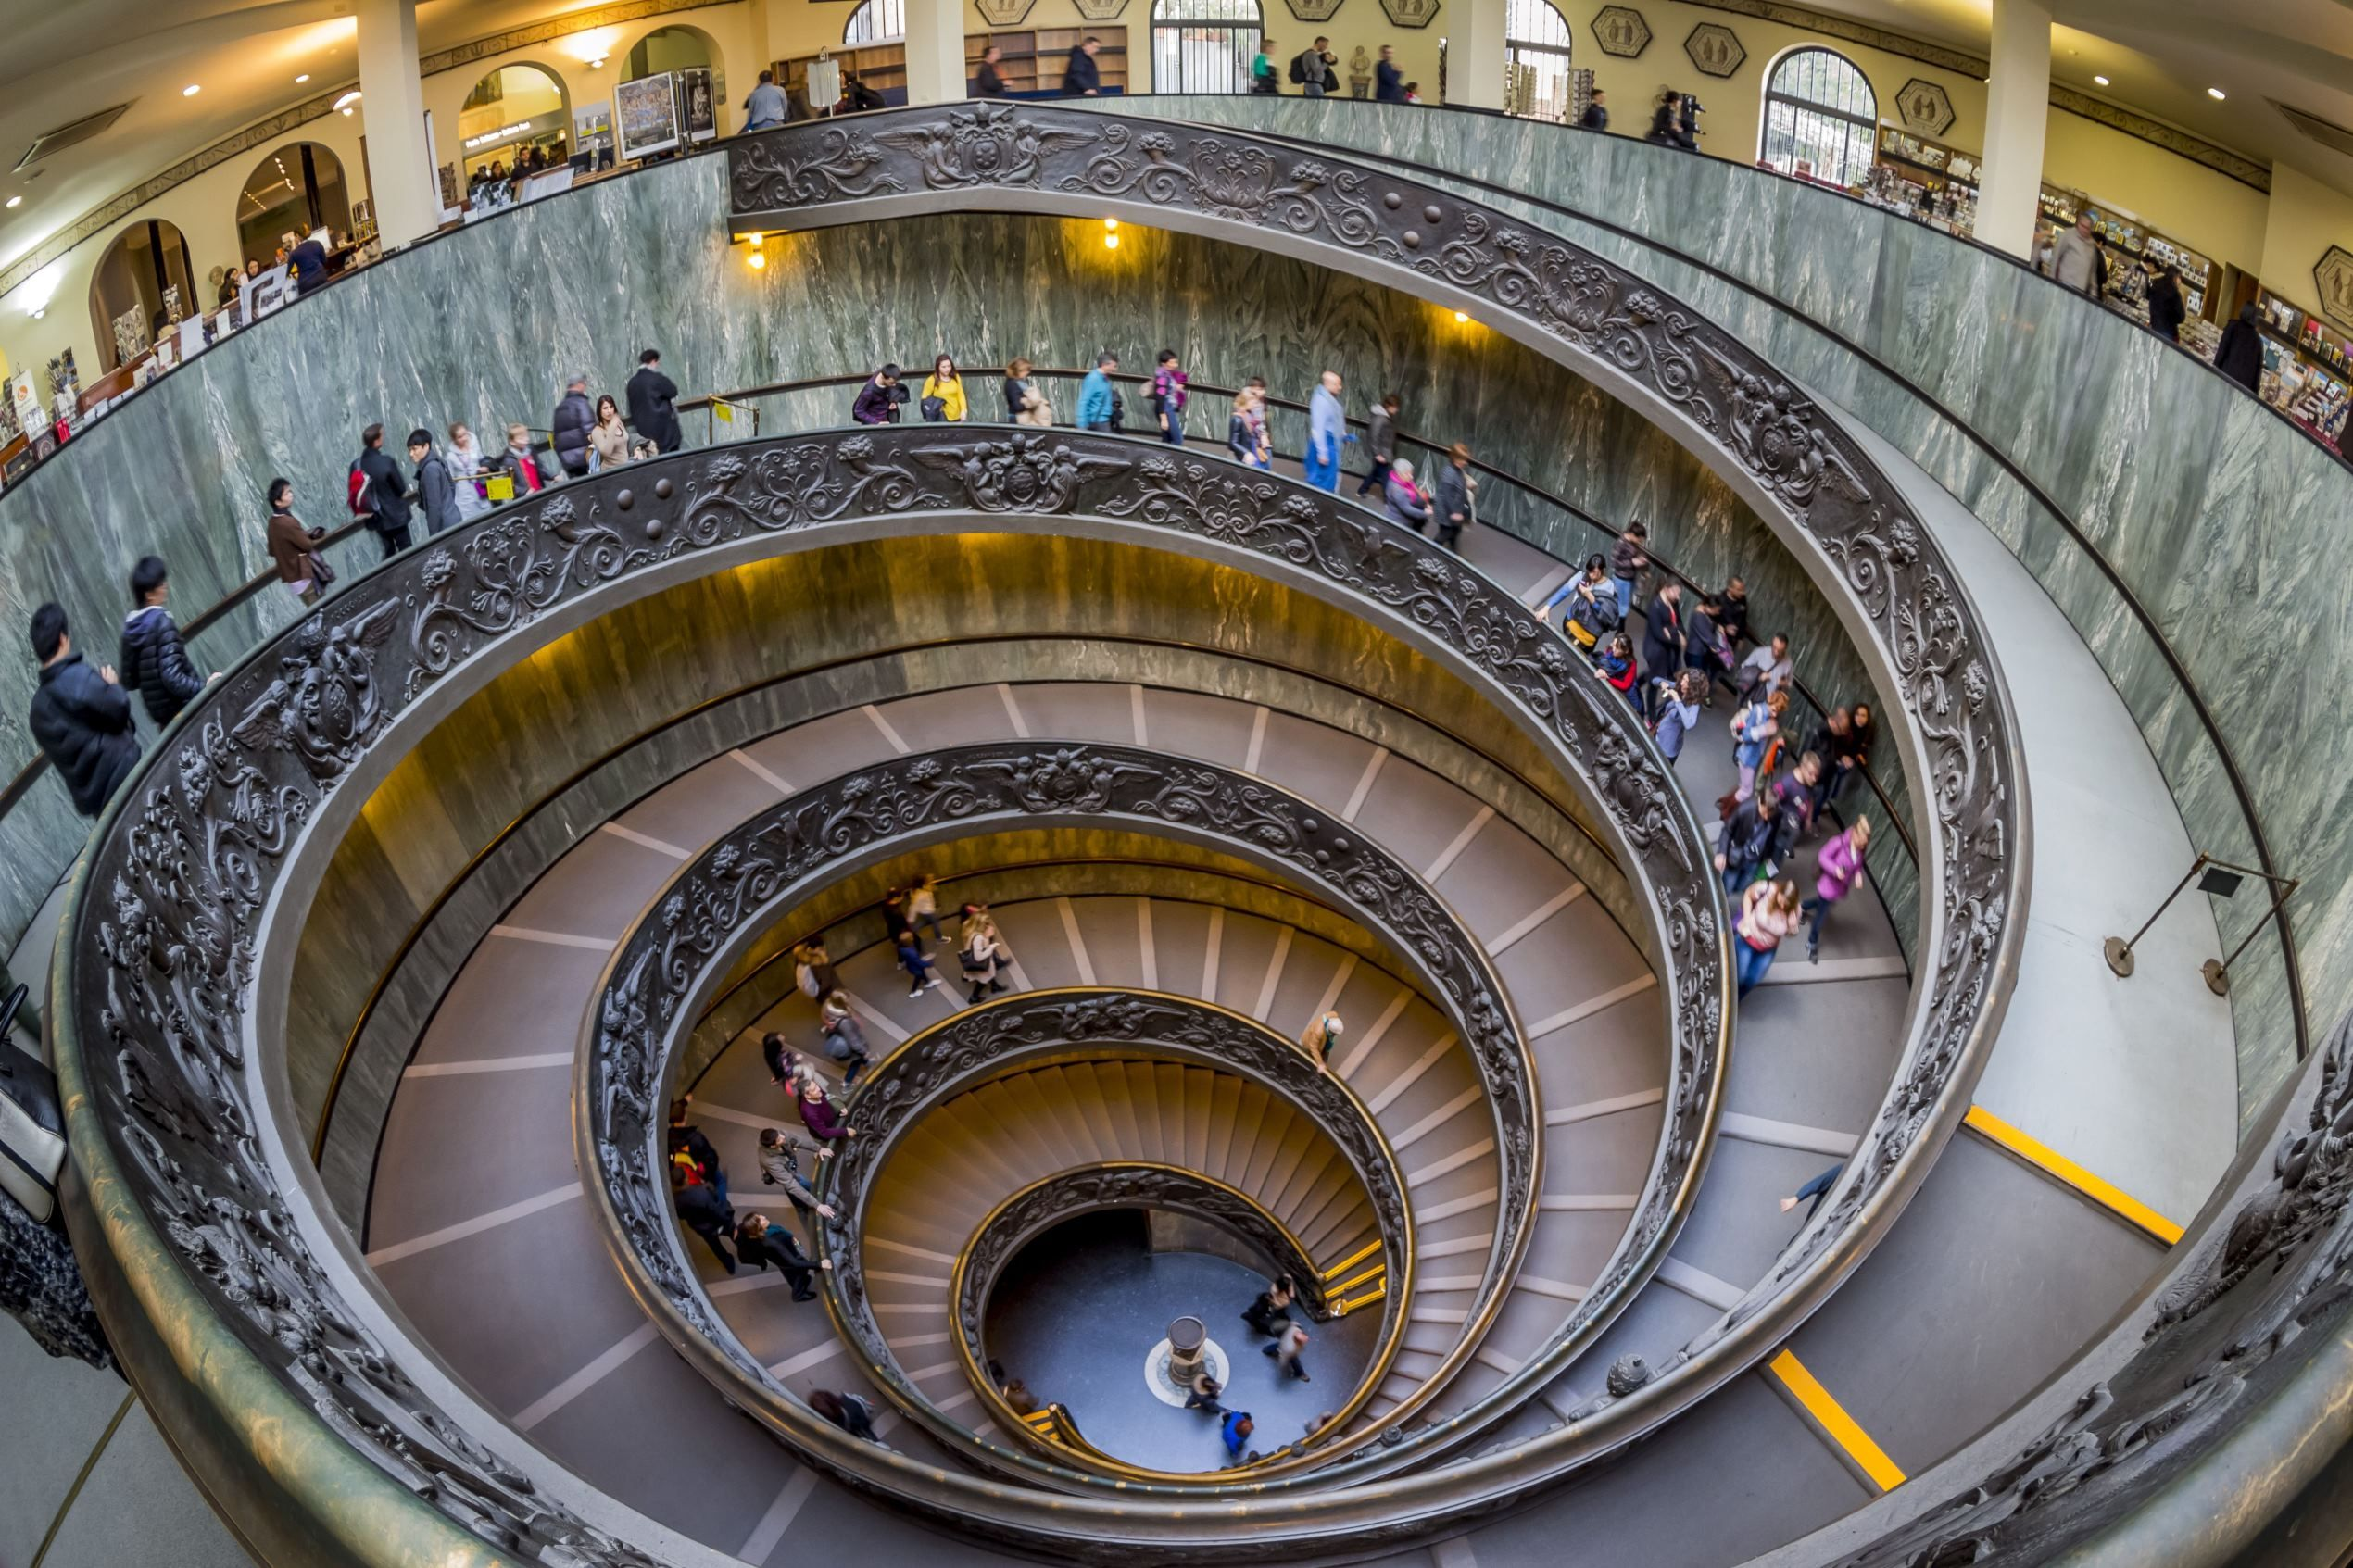 Best Spiral Staircase In Vatican Museum This Exquisite Double 640 x 480